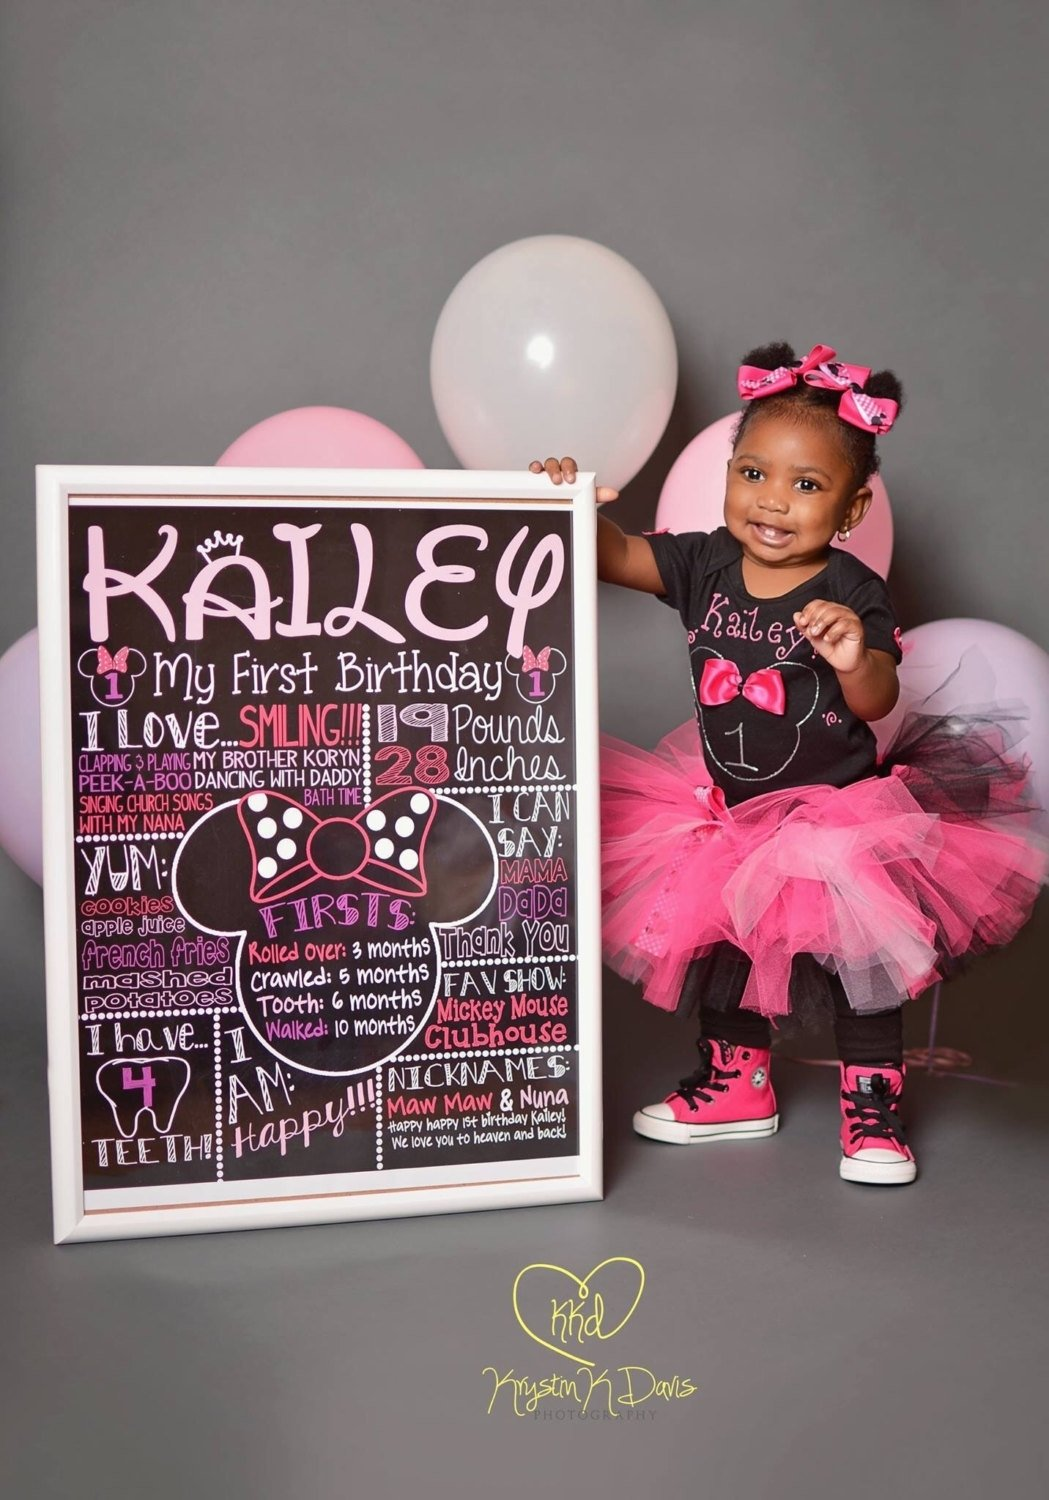 10 Fashionable Minnie Mouse First Birthday Ideas minnie mouse first birthday chalkboard 1st birthday chalkboard for 2 2021